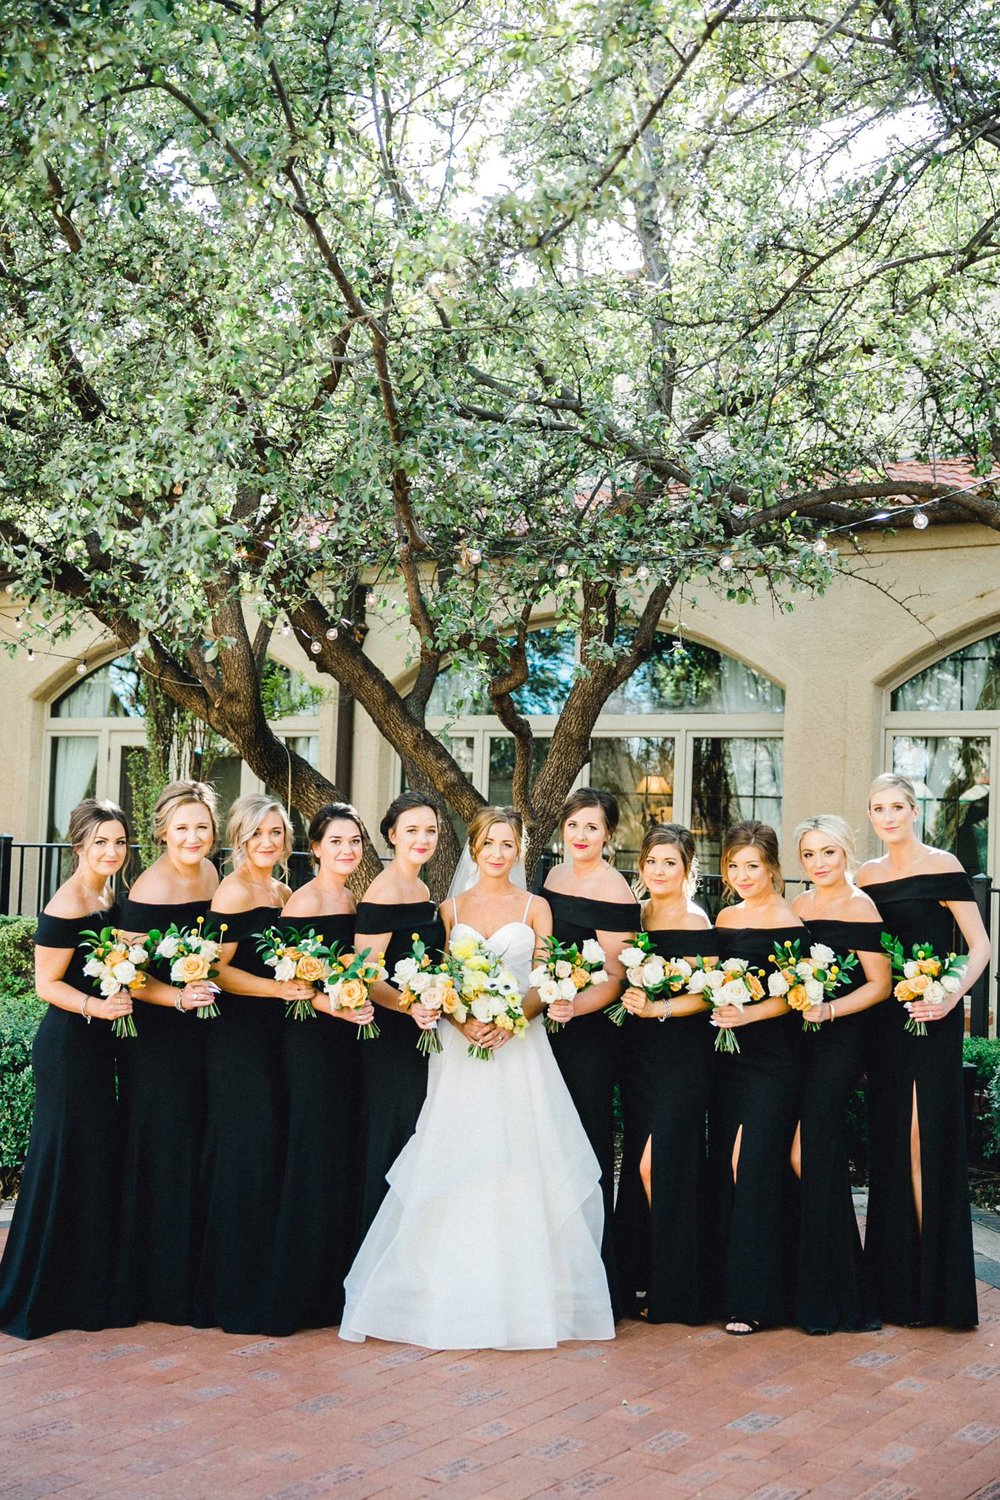 MARLEE+LLOYD+MORGAN+ALLEEJ+TEXAS+TECH+MERKET+ALUMNI+WEDDINGS+LUBBOCK+WEST+TABLE+CLASSIC+SPAIN_0112.jpg